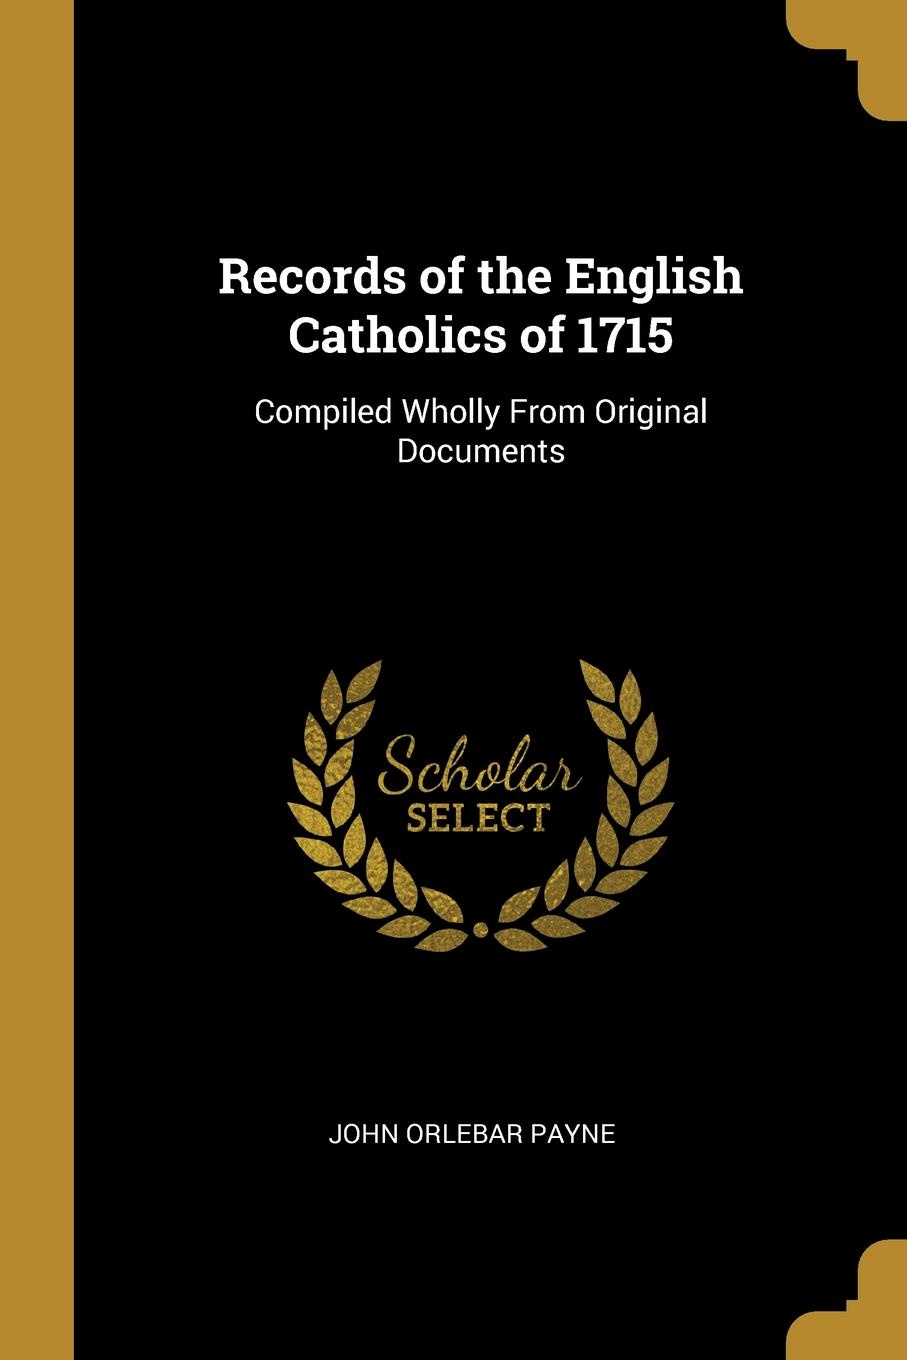 Records of the English Catholics of 1715. Compiled Wholly From Original Documents